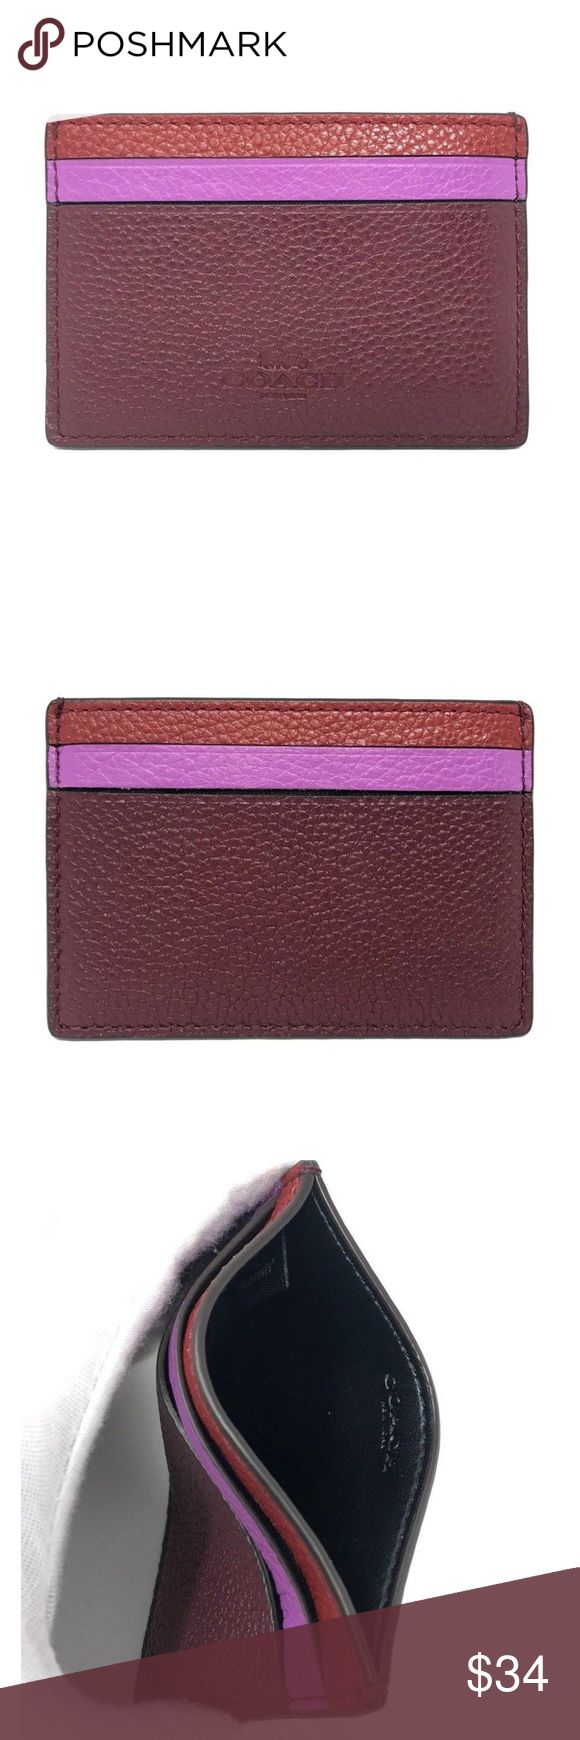 "Coach Flat Card Case in Leather 100% Authentic Coach!  Buy with confidence!  • MSRP: $75.00 • Style: F11739  Features: • Flat card case in grain leather with rainbow • Red Multi • Grain leather • Four credit card slots • 4"" (L) x 2 3/4"" (H)  Please feel free to ask any questions. Happy shopping! Coach Accessories Key & Card Holders"